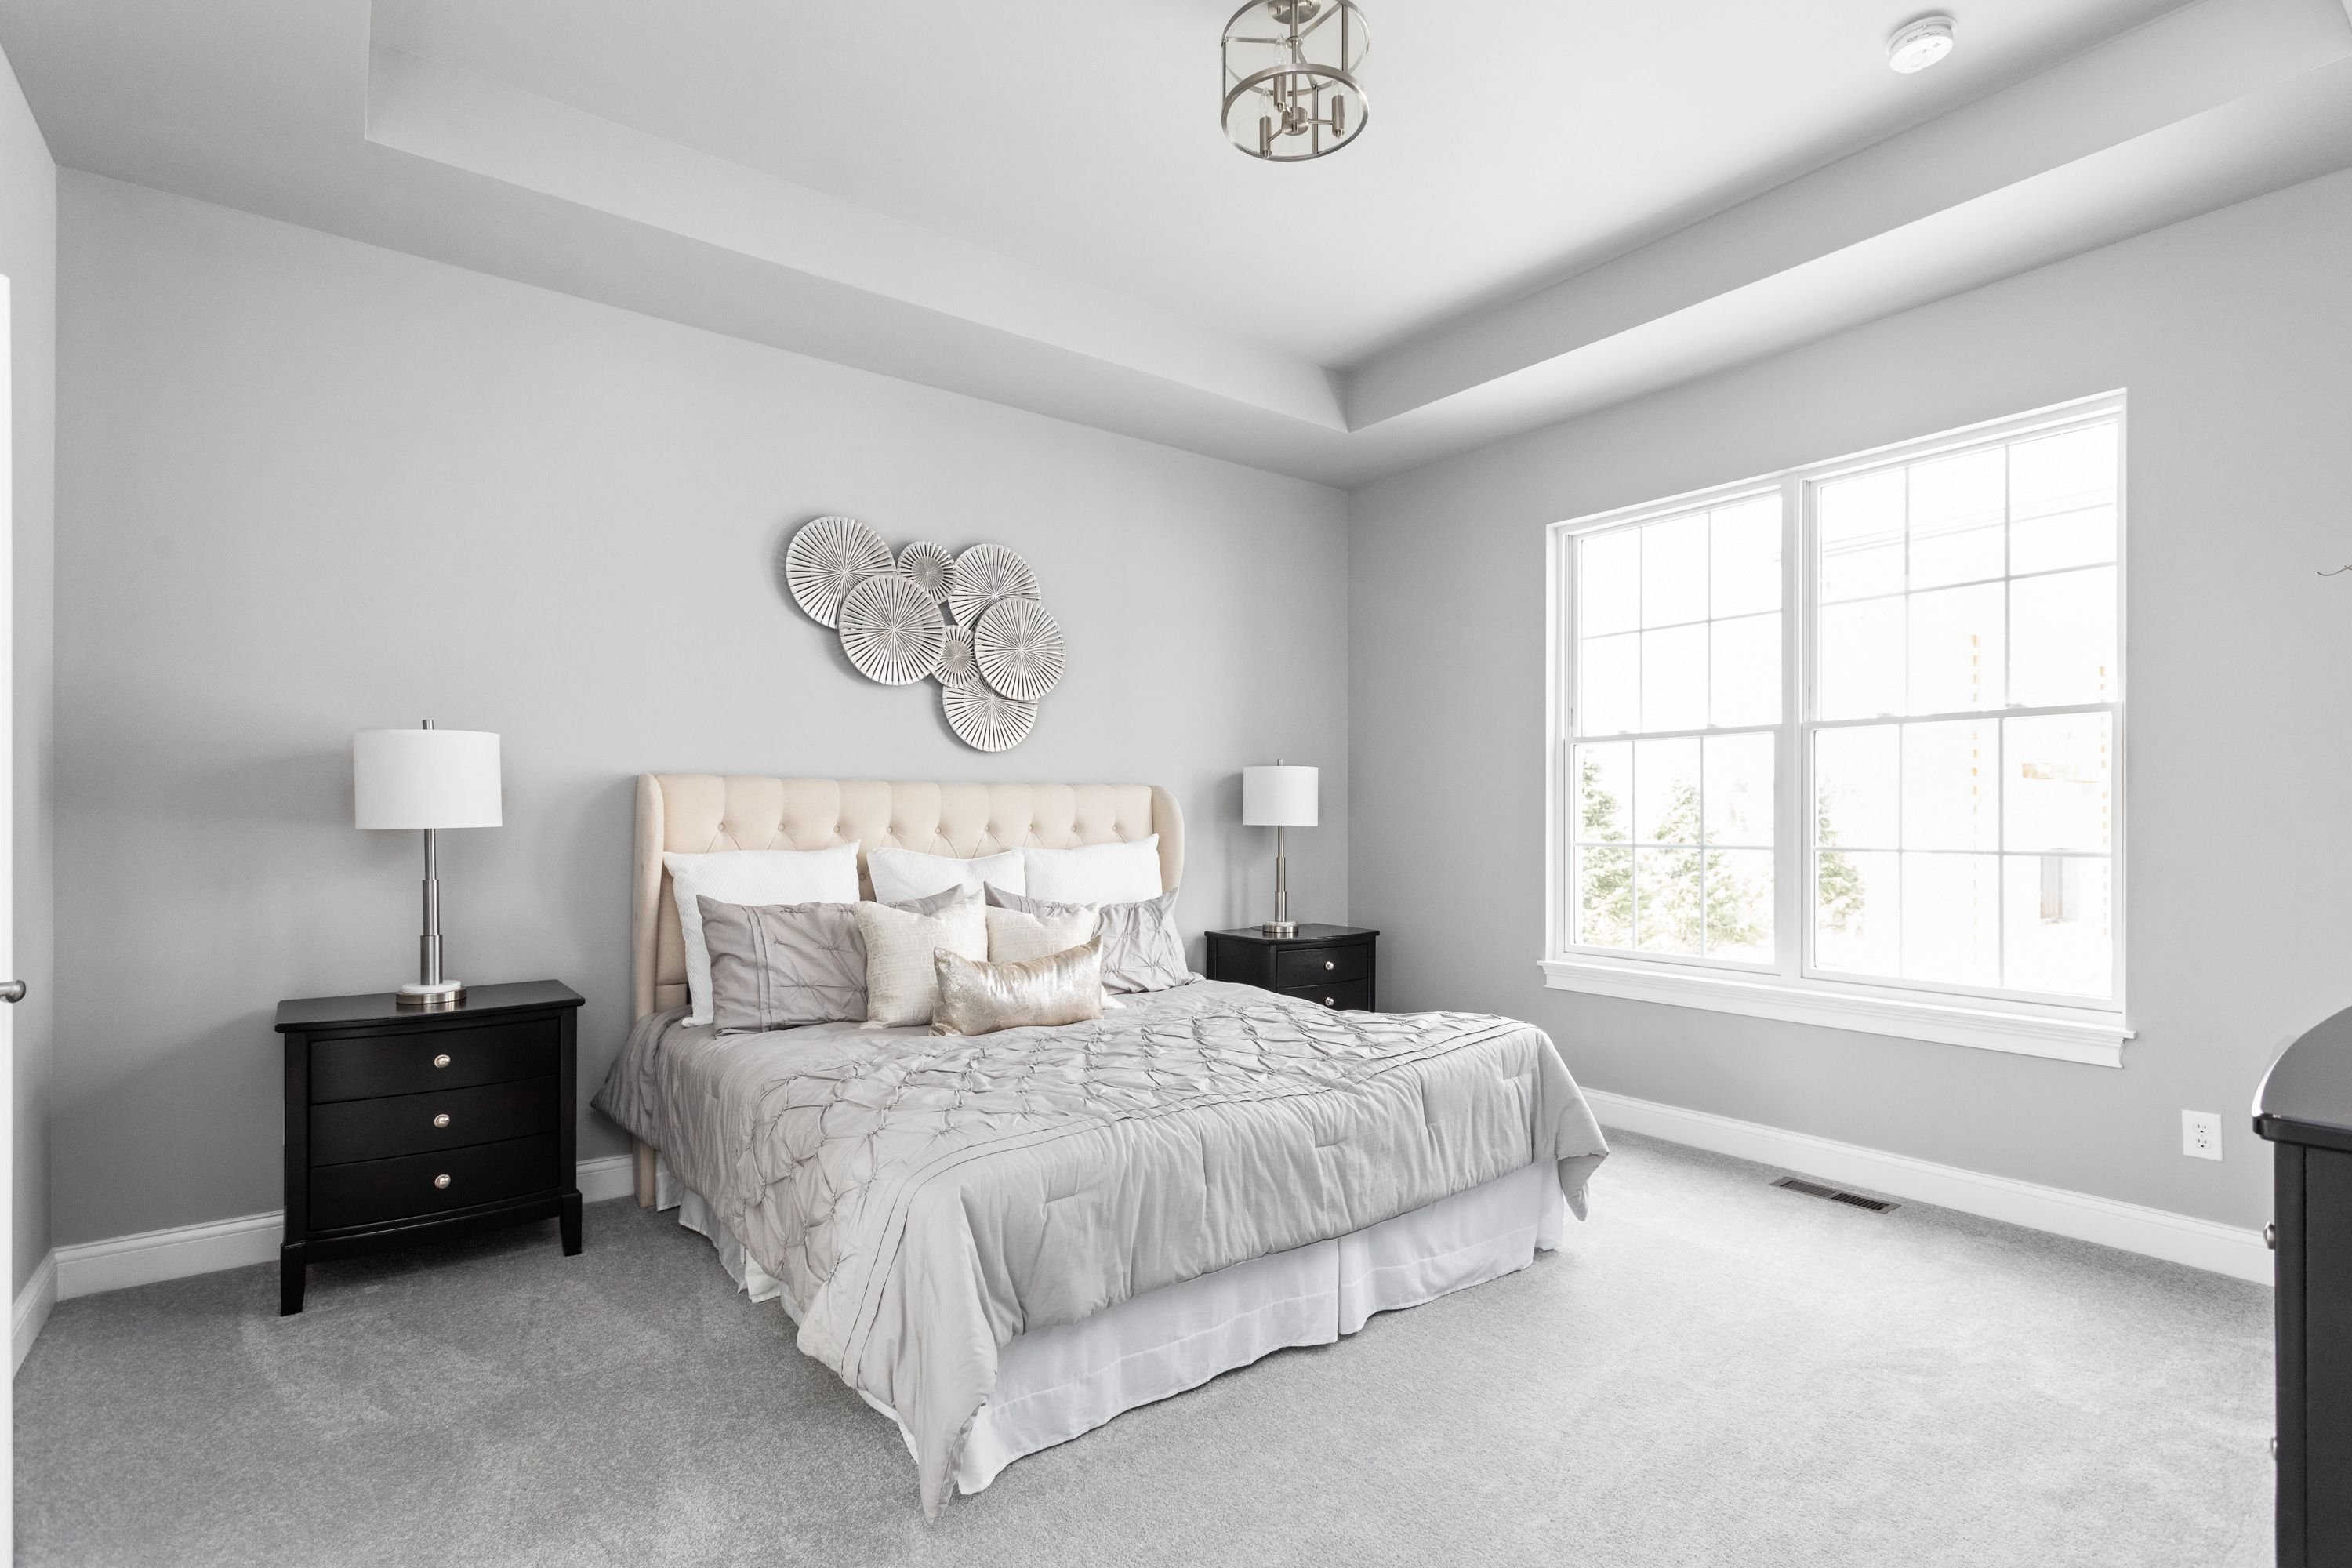 Bedroom featured in the Lockerbie 323 By Estridge Homes in Indianapolis, IN